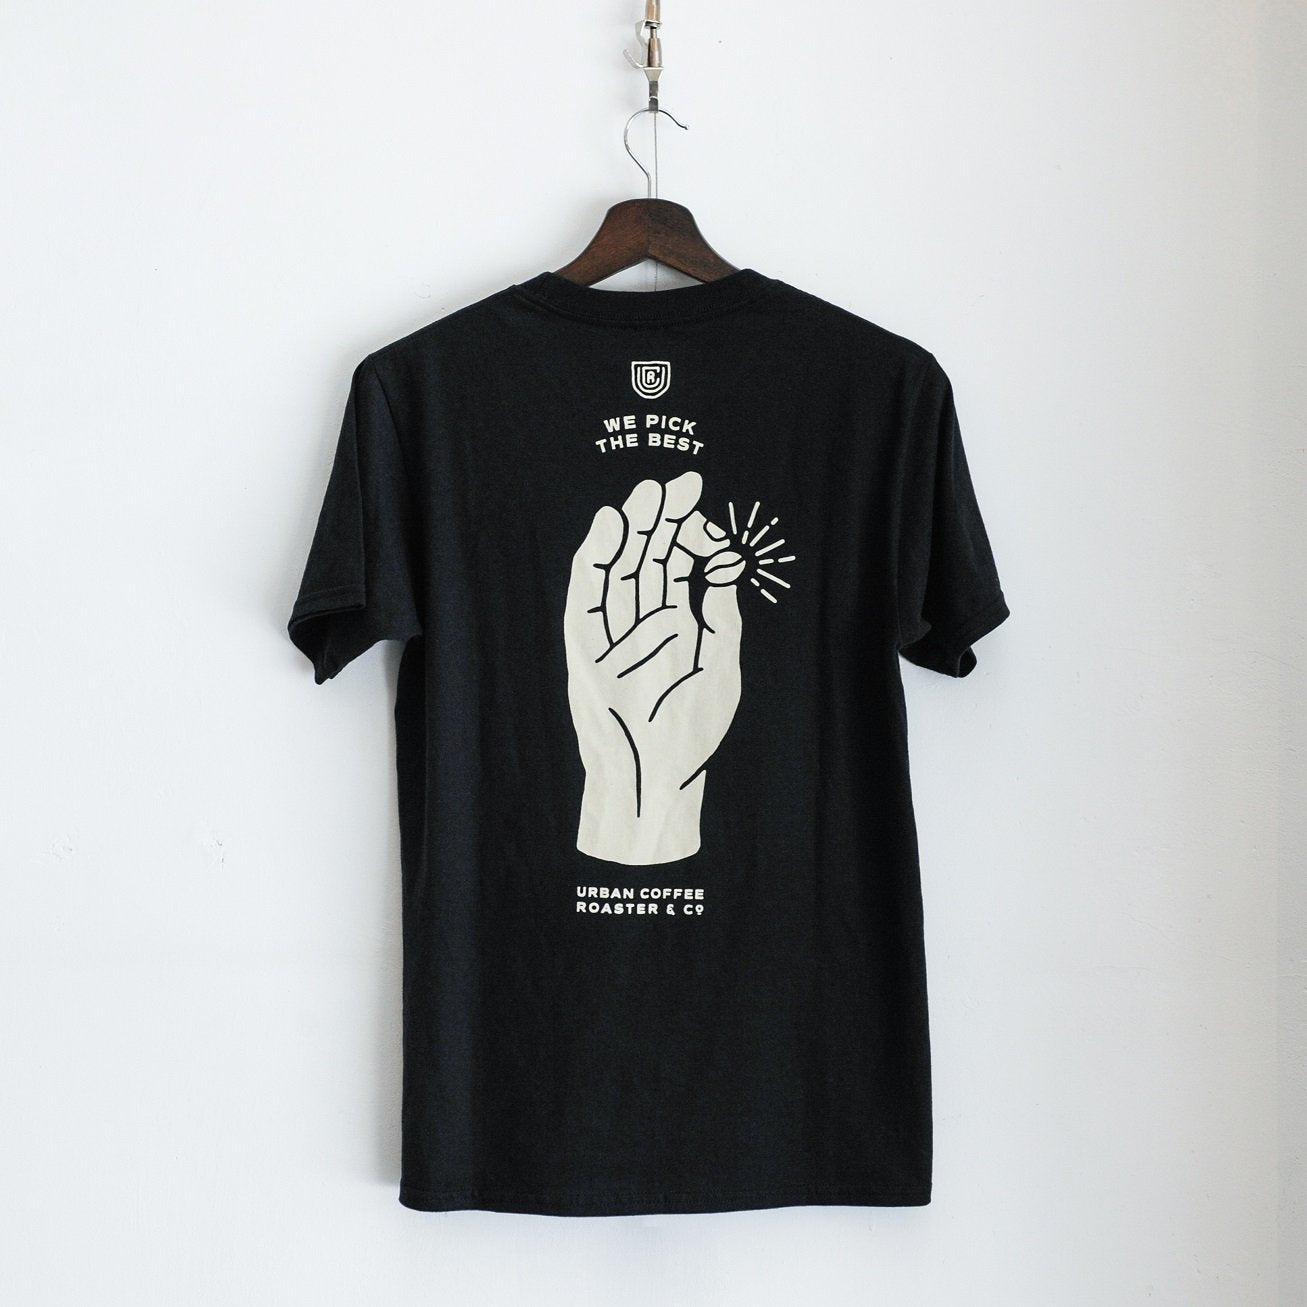 UCR We Pick The Best T-SHIRT (Black) - Urban Coffee Roaster